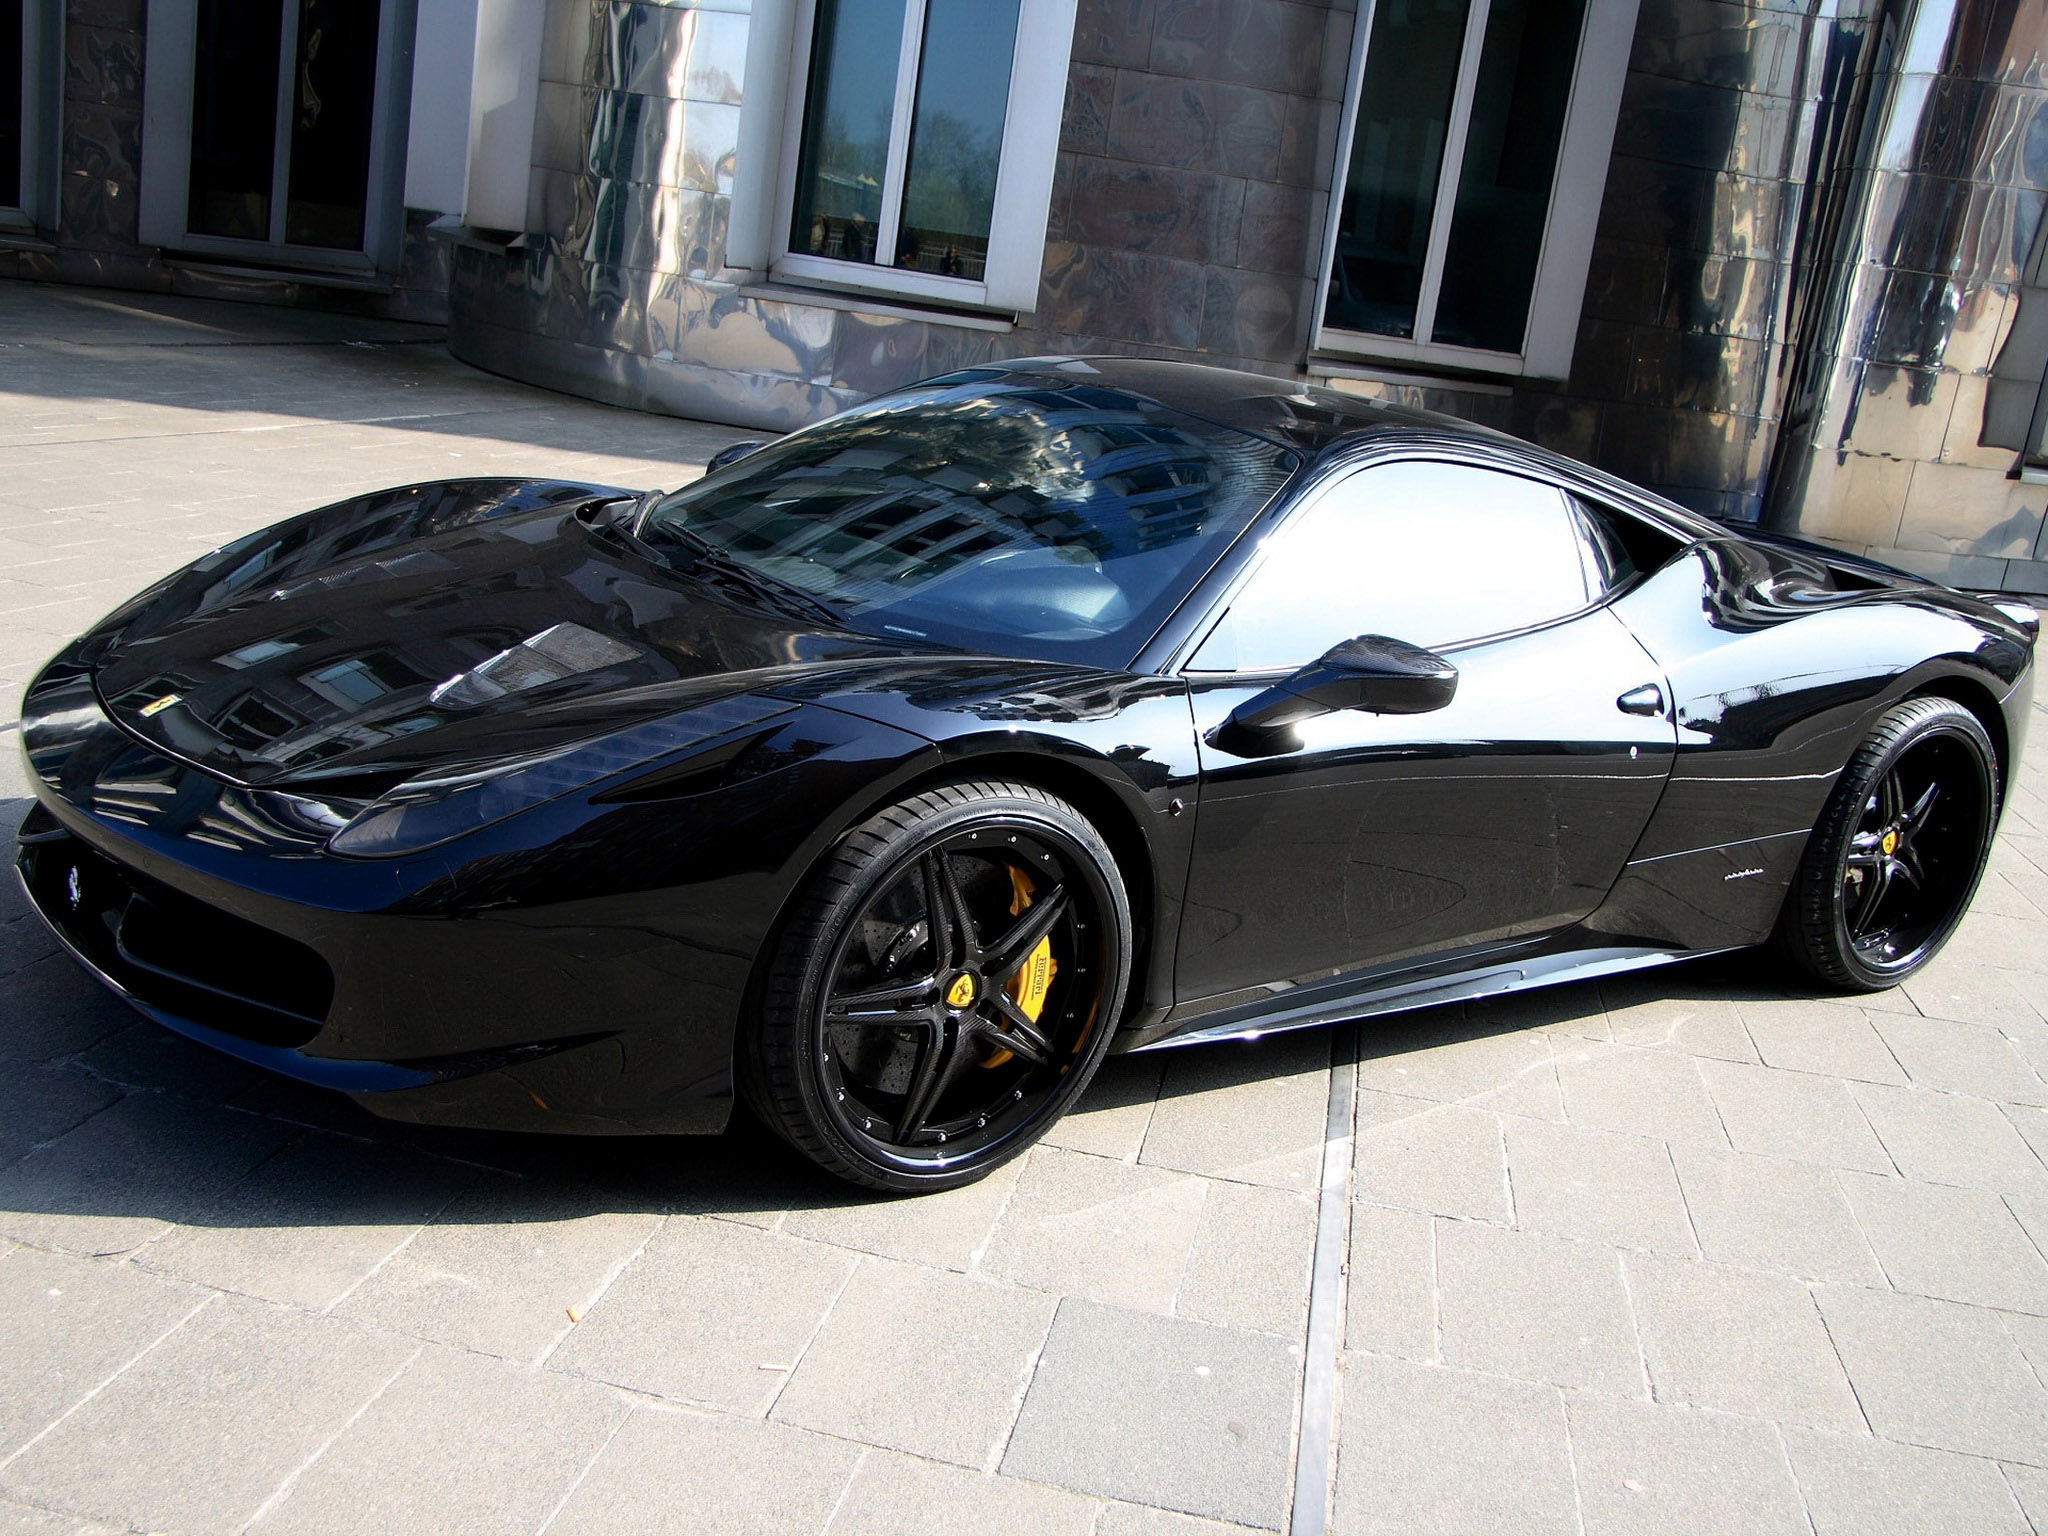 2011 ferrari 458 italia specs image collections hd cars wallpaper 2011 ferrari 458 italia white images hd cars wallpaper 2011 ferrari 458 italia black choice image vanachro Image collections